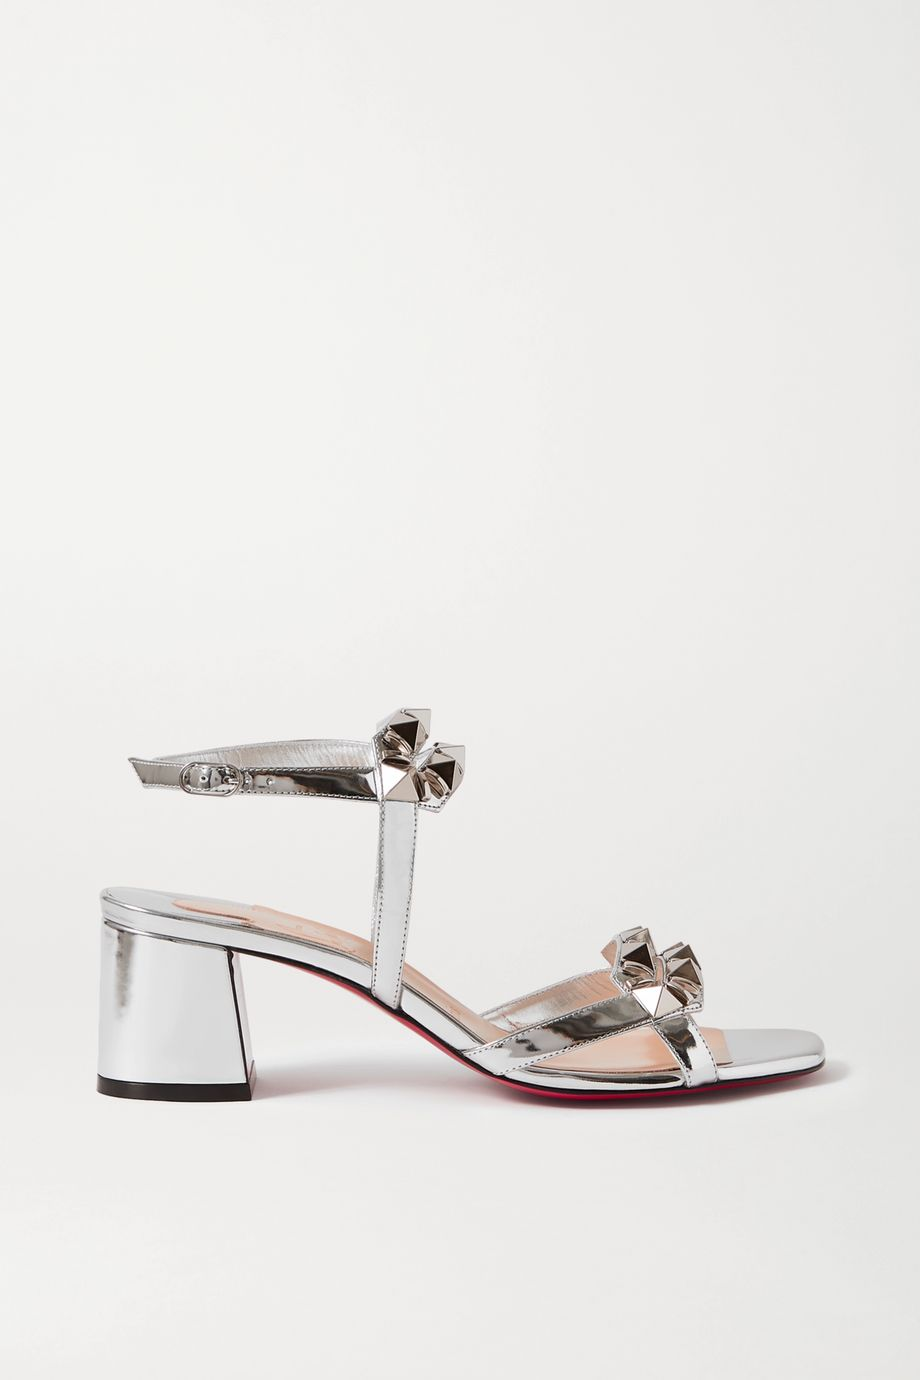 Christian Louboutin Galerietta 55 studded mirrored-leather sandals